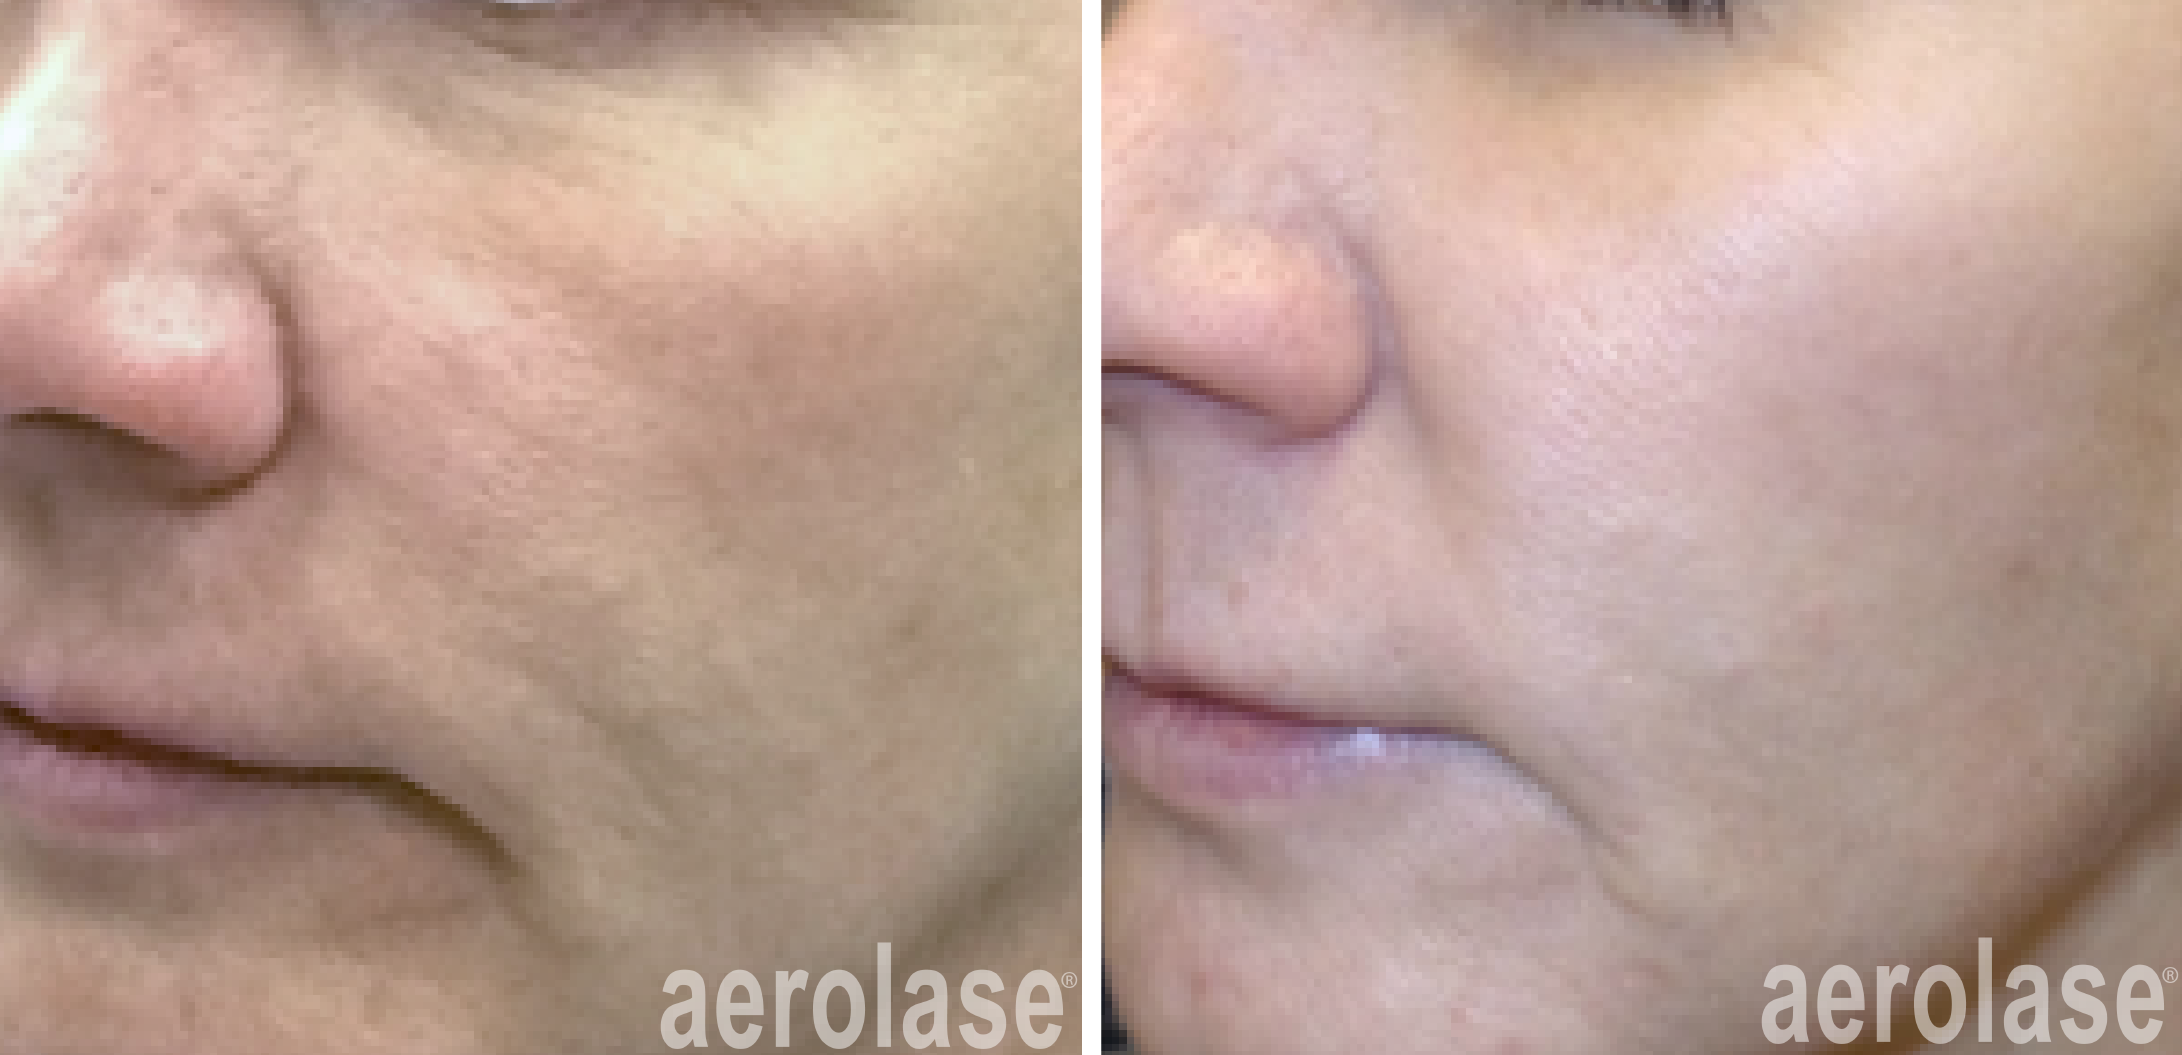 neoskin treatment for improved skin texture in cornelius